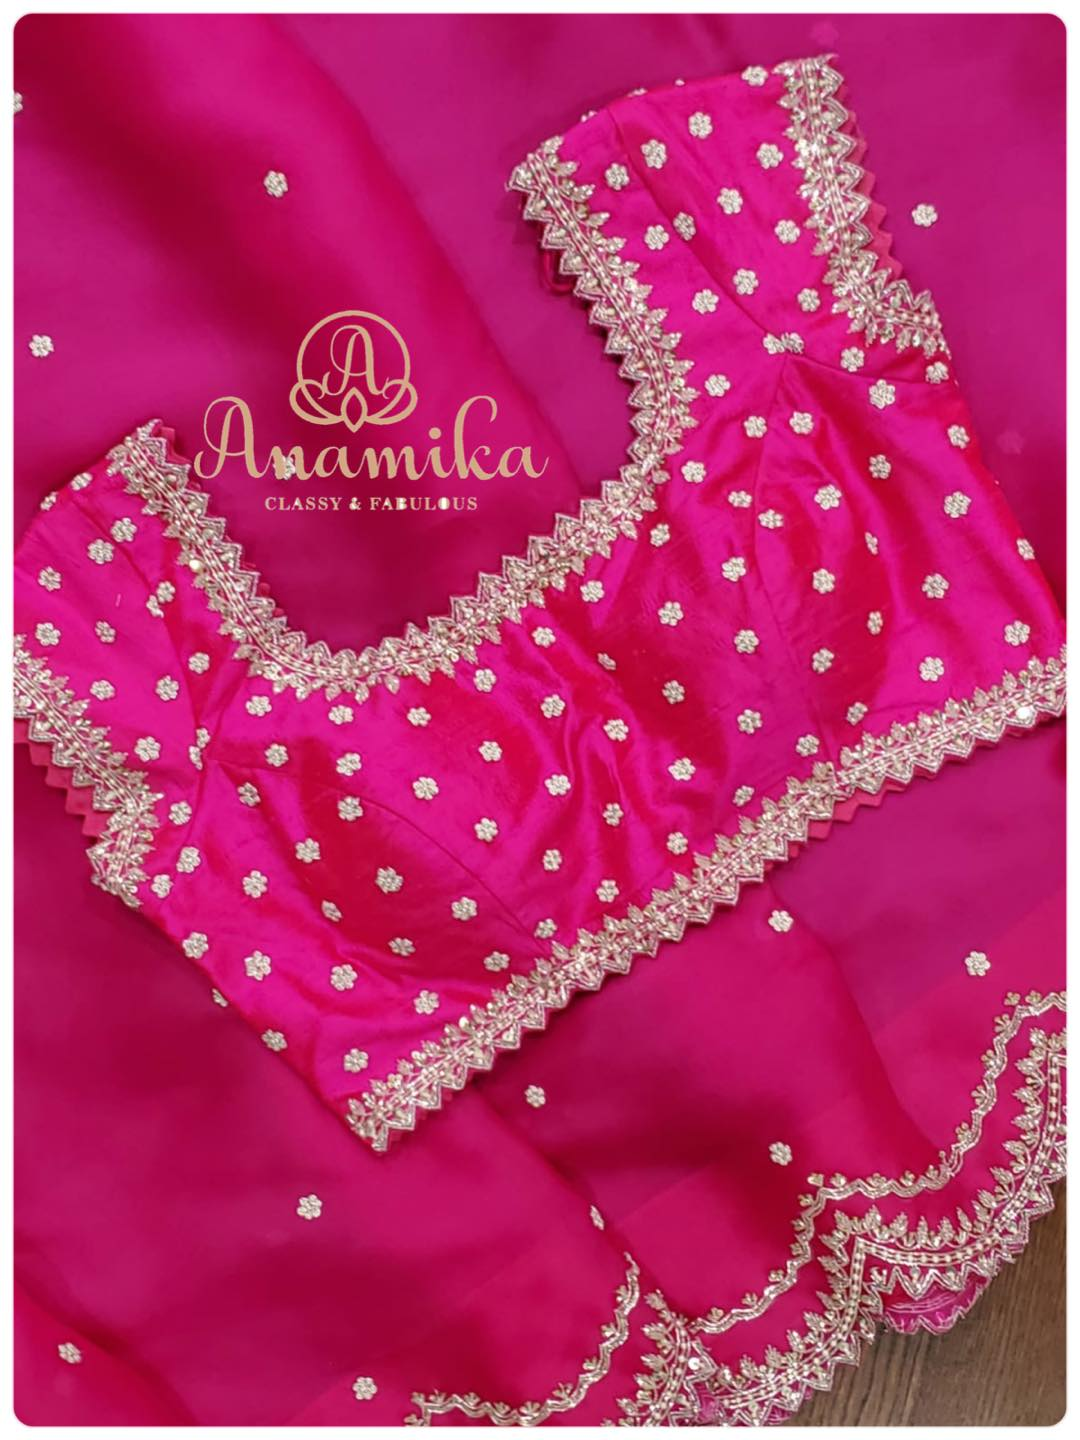 Bring home this stunning ensemble in lovely shade of hot pink hand crafted on satin organza. The silver zardozi work the scallop border the intricacy and captivating embroidery details – all add to create a stunning look on YOU!  An amazingly beautiful saree and blouse set that is a must for your next party